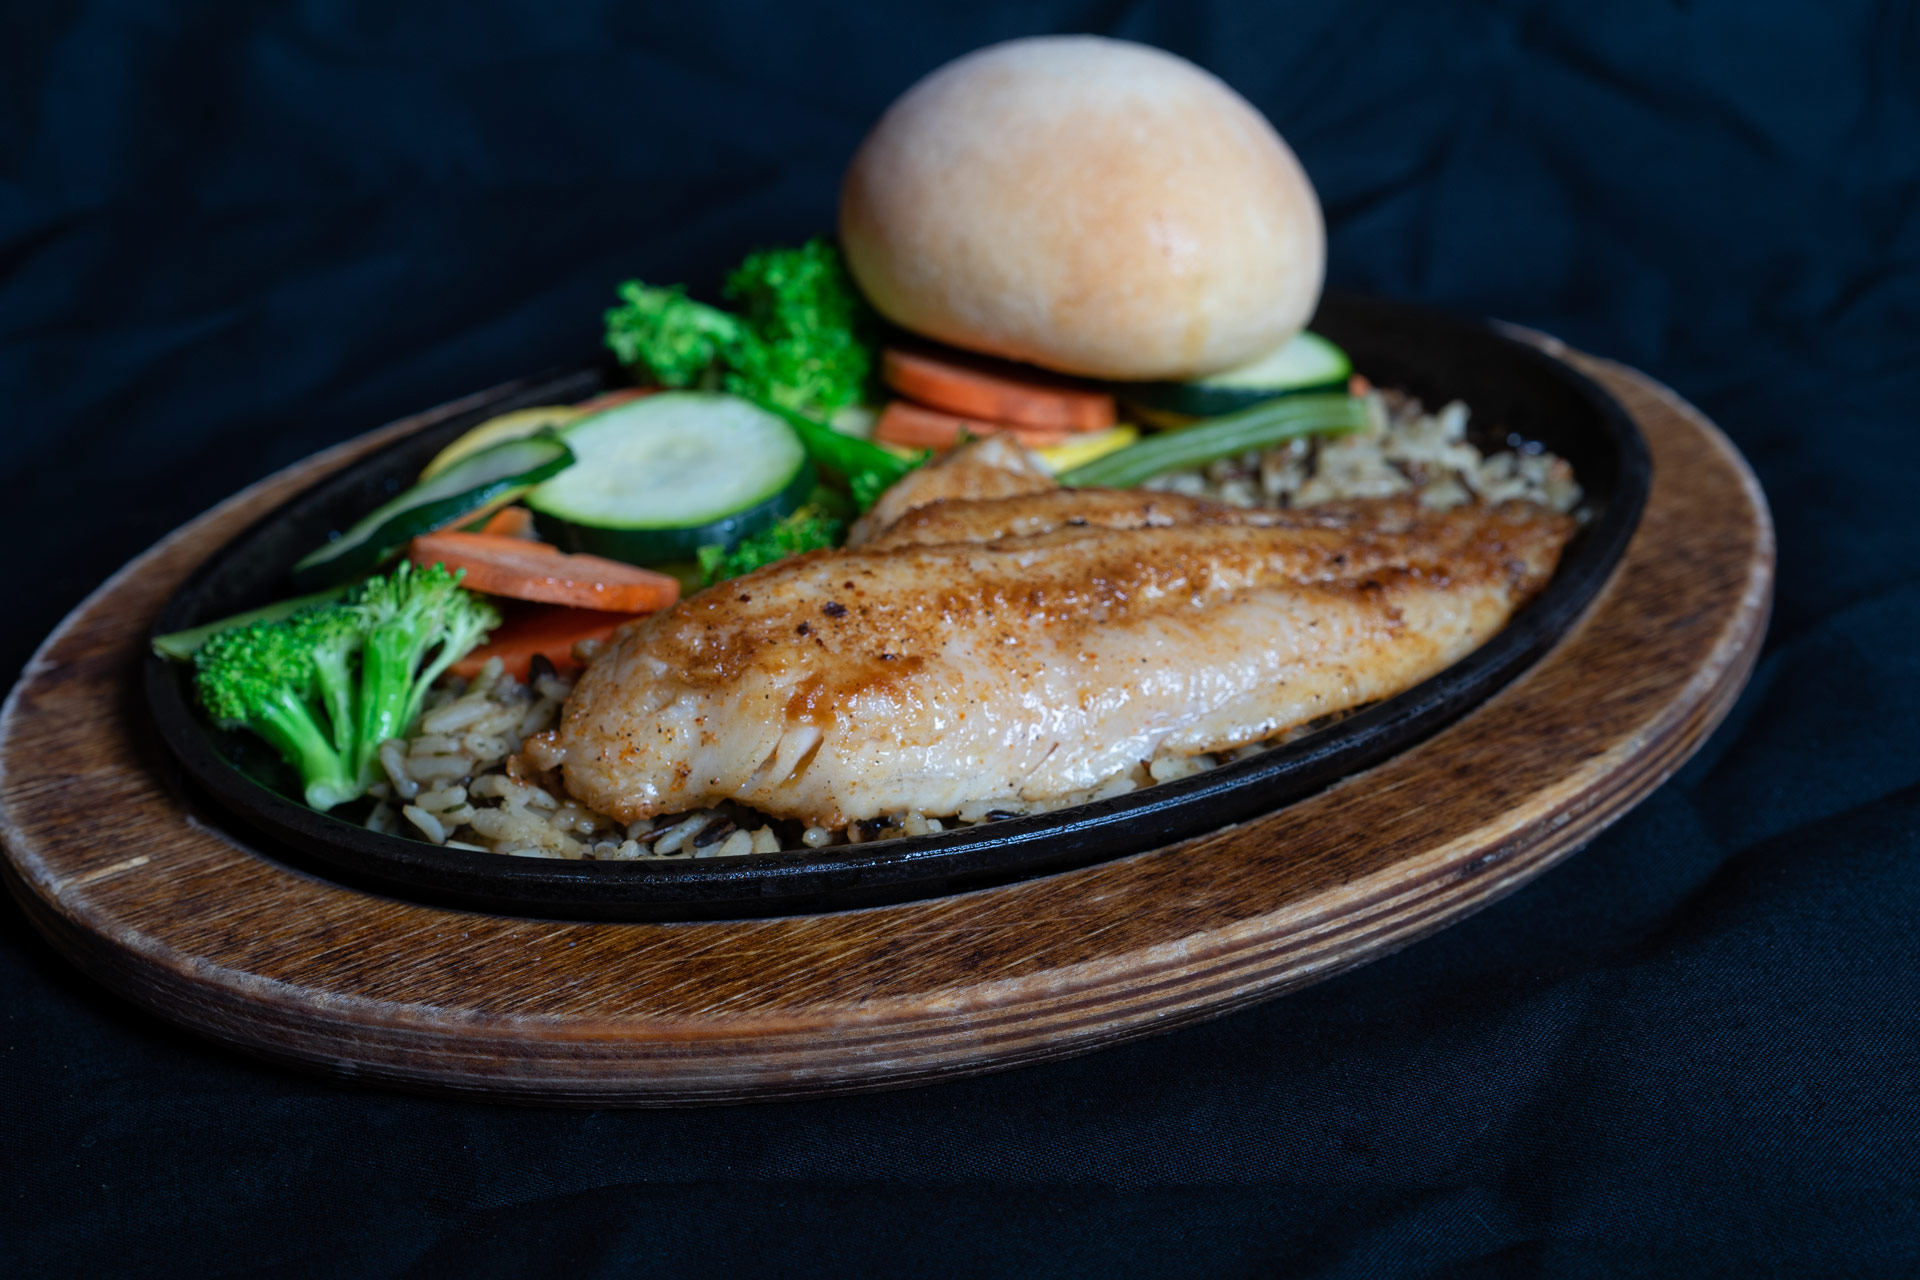 Grilled Catfish Pride of the Pond catfish fillets grilled, lightly seasoned, and served over wild rice with your choice of grilled or steamed vegetables and a house prepared yeast roll.  One Fillet 13.00 Two fillets 15.00